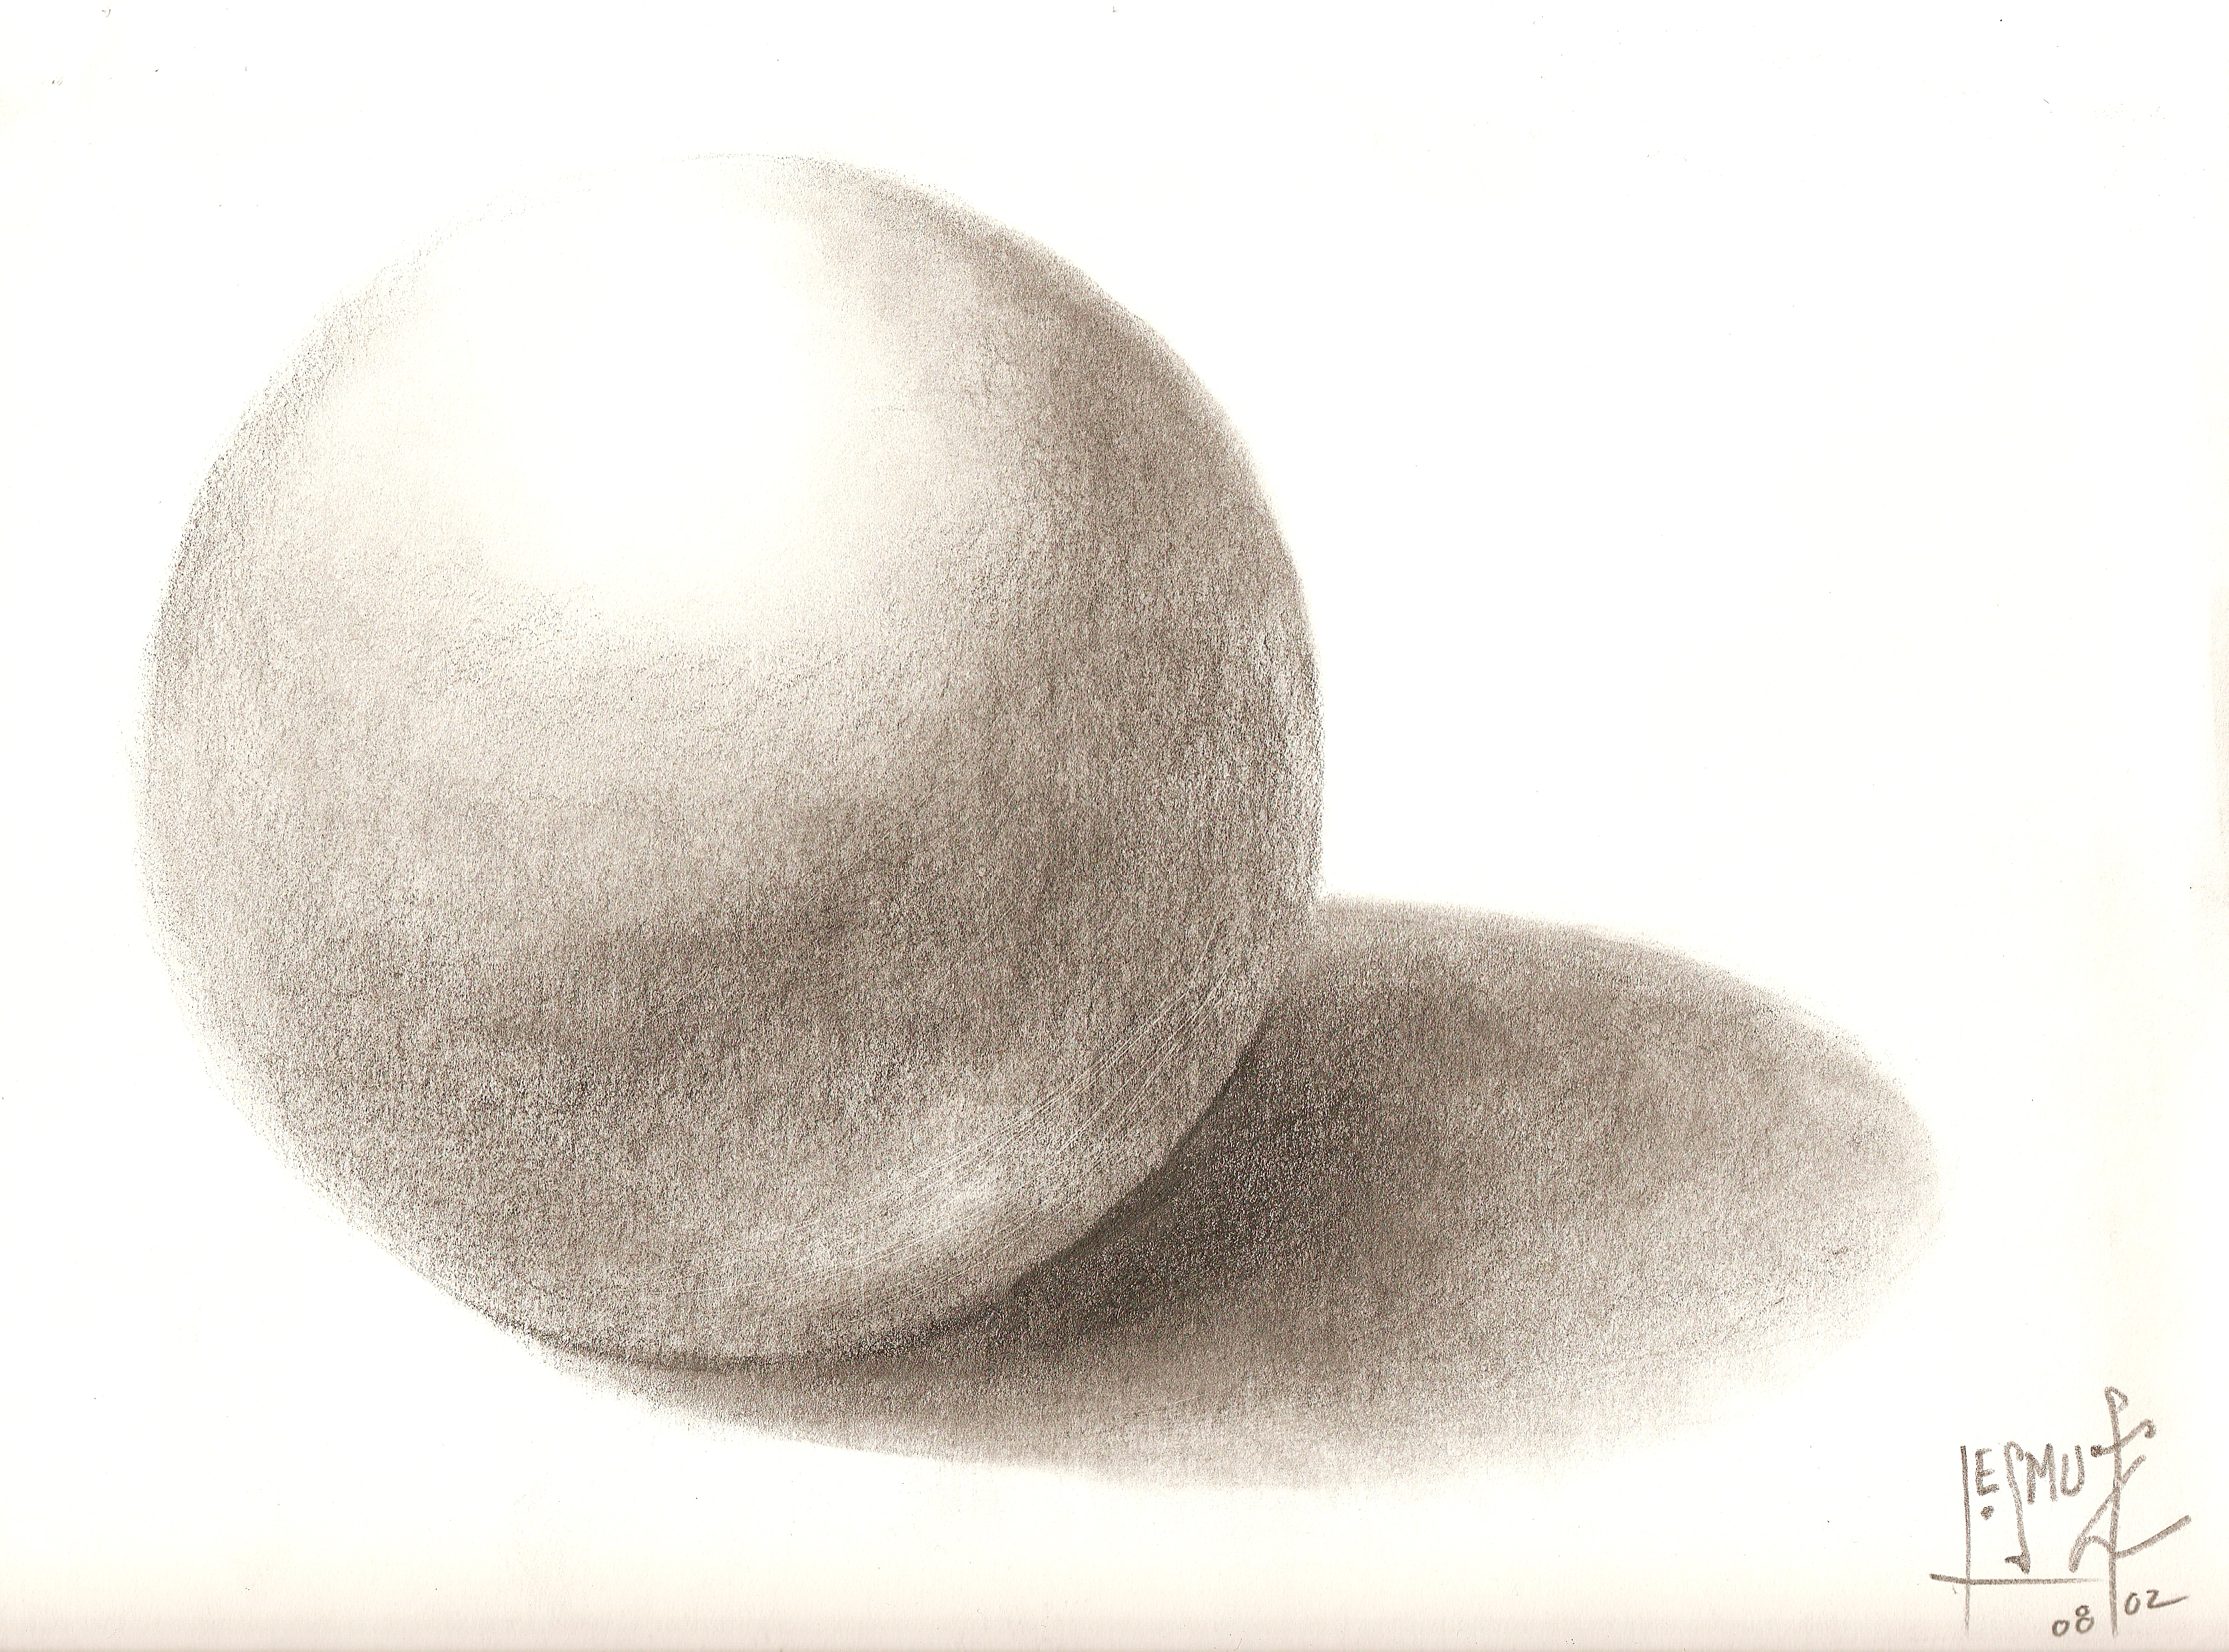 BALL ON A TABLE